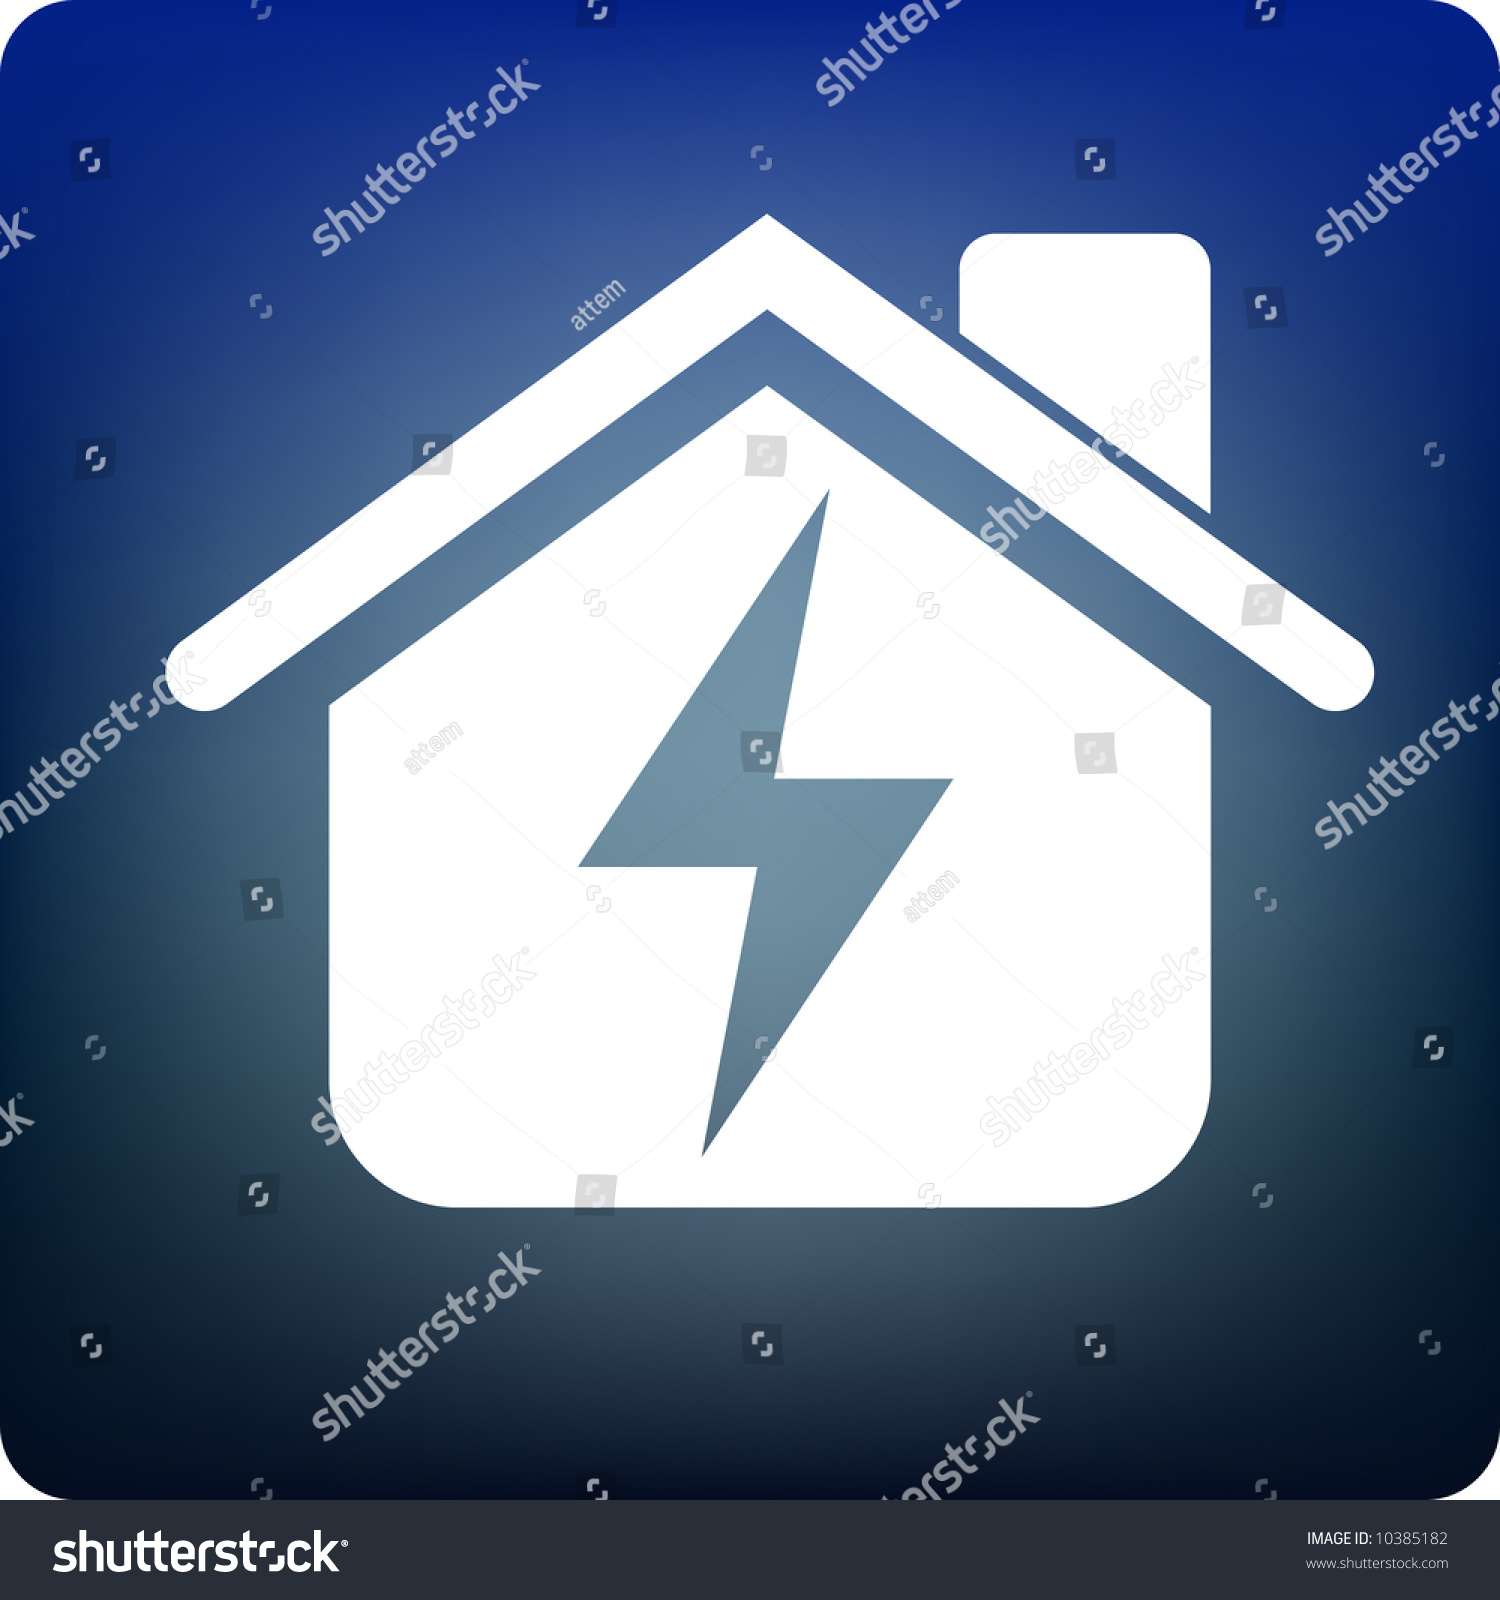 Home Electricity Stock Vector 10385182 - Shutterstock